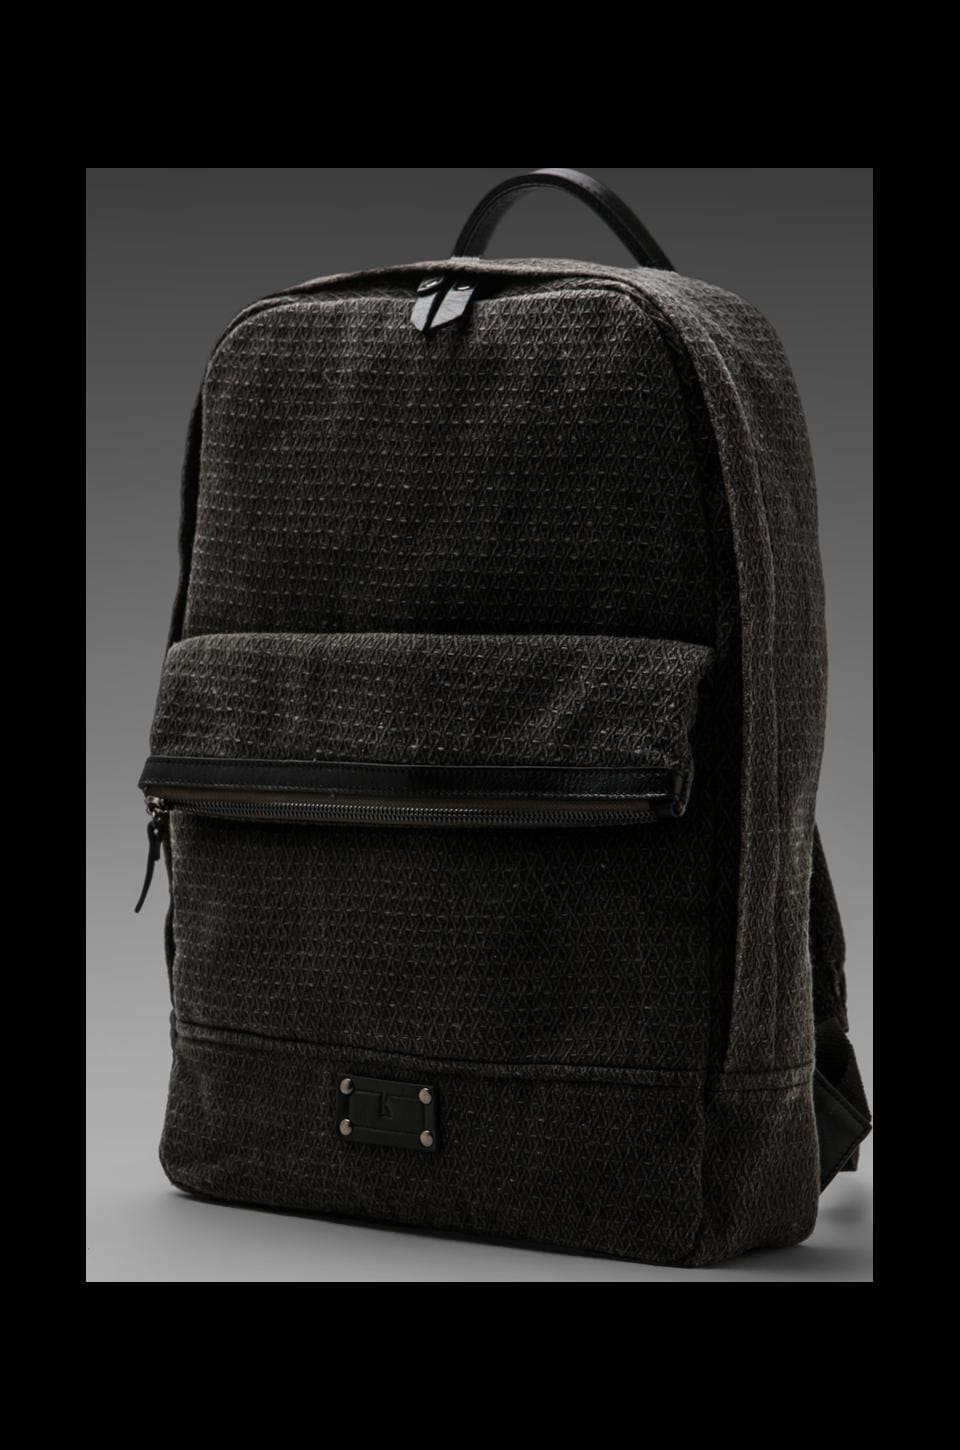 KRANE K by Krane Kayden Backpack in Black